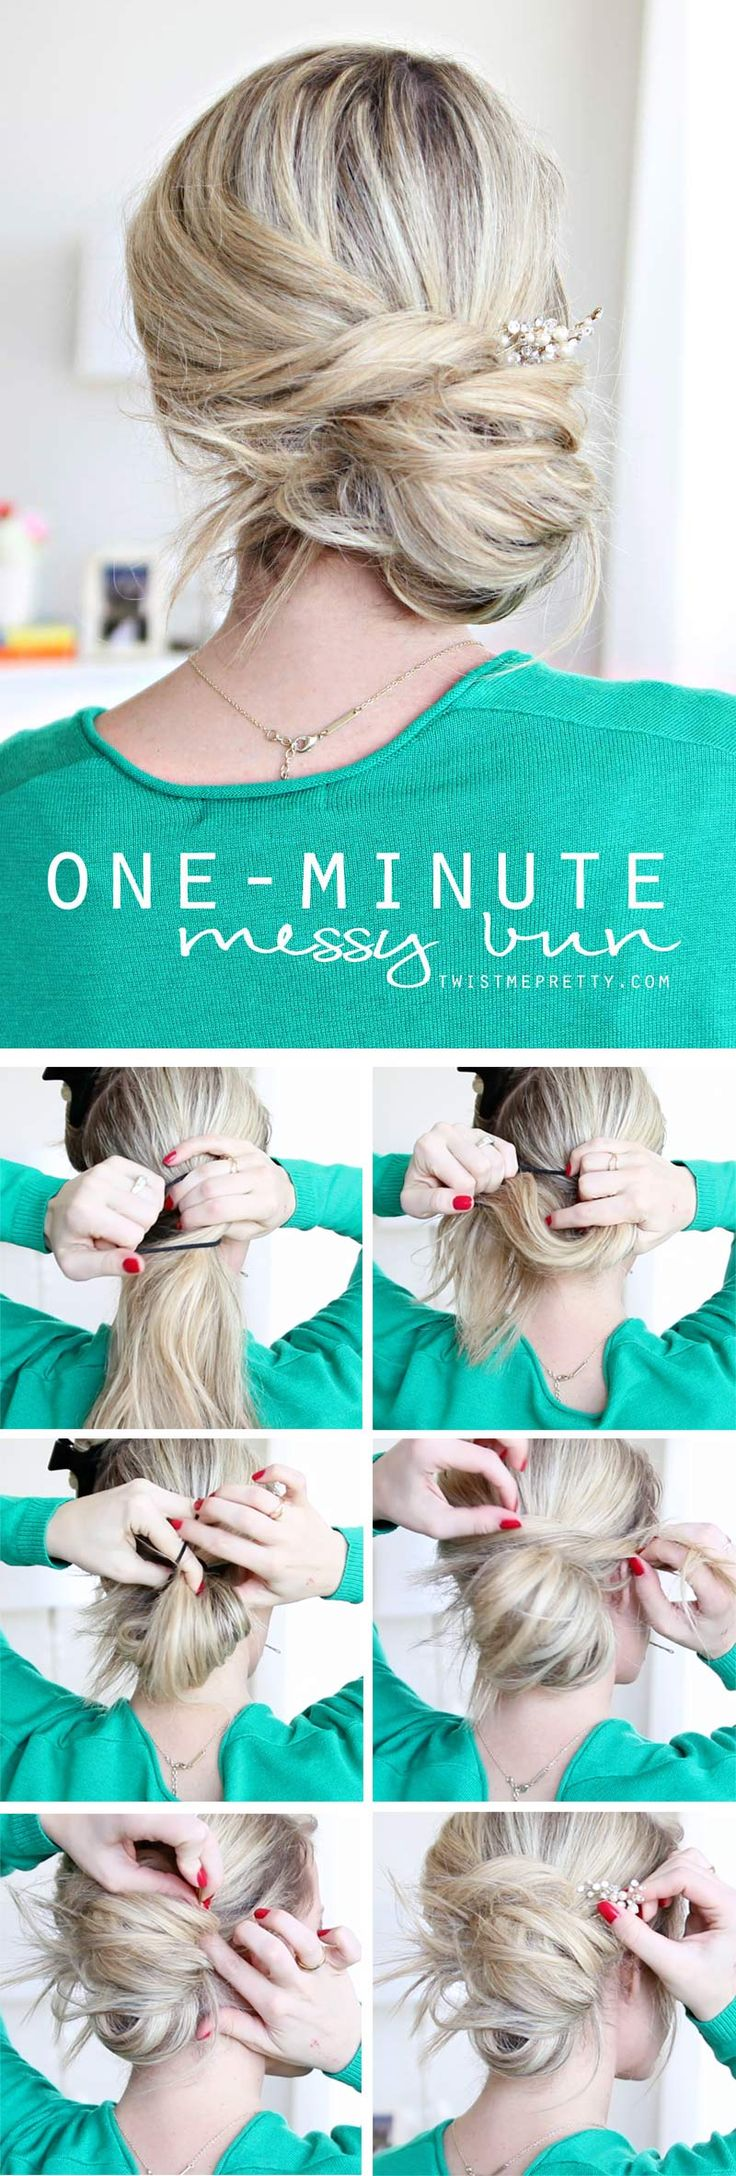 The one minute messy bun! It'll save your life when you need something fast and fancy!